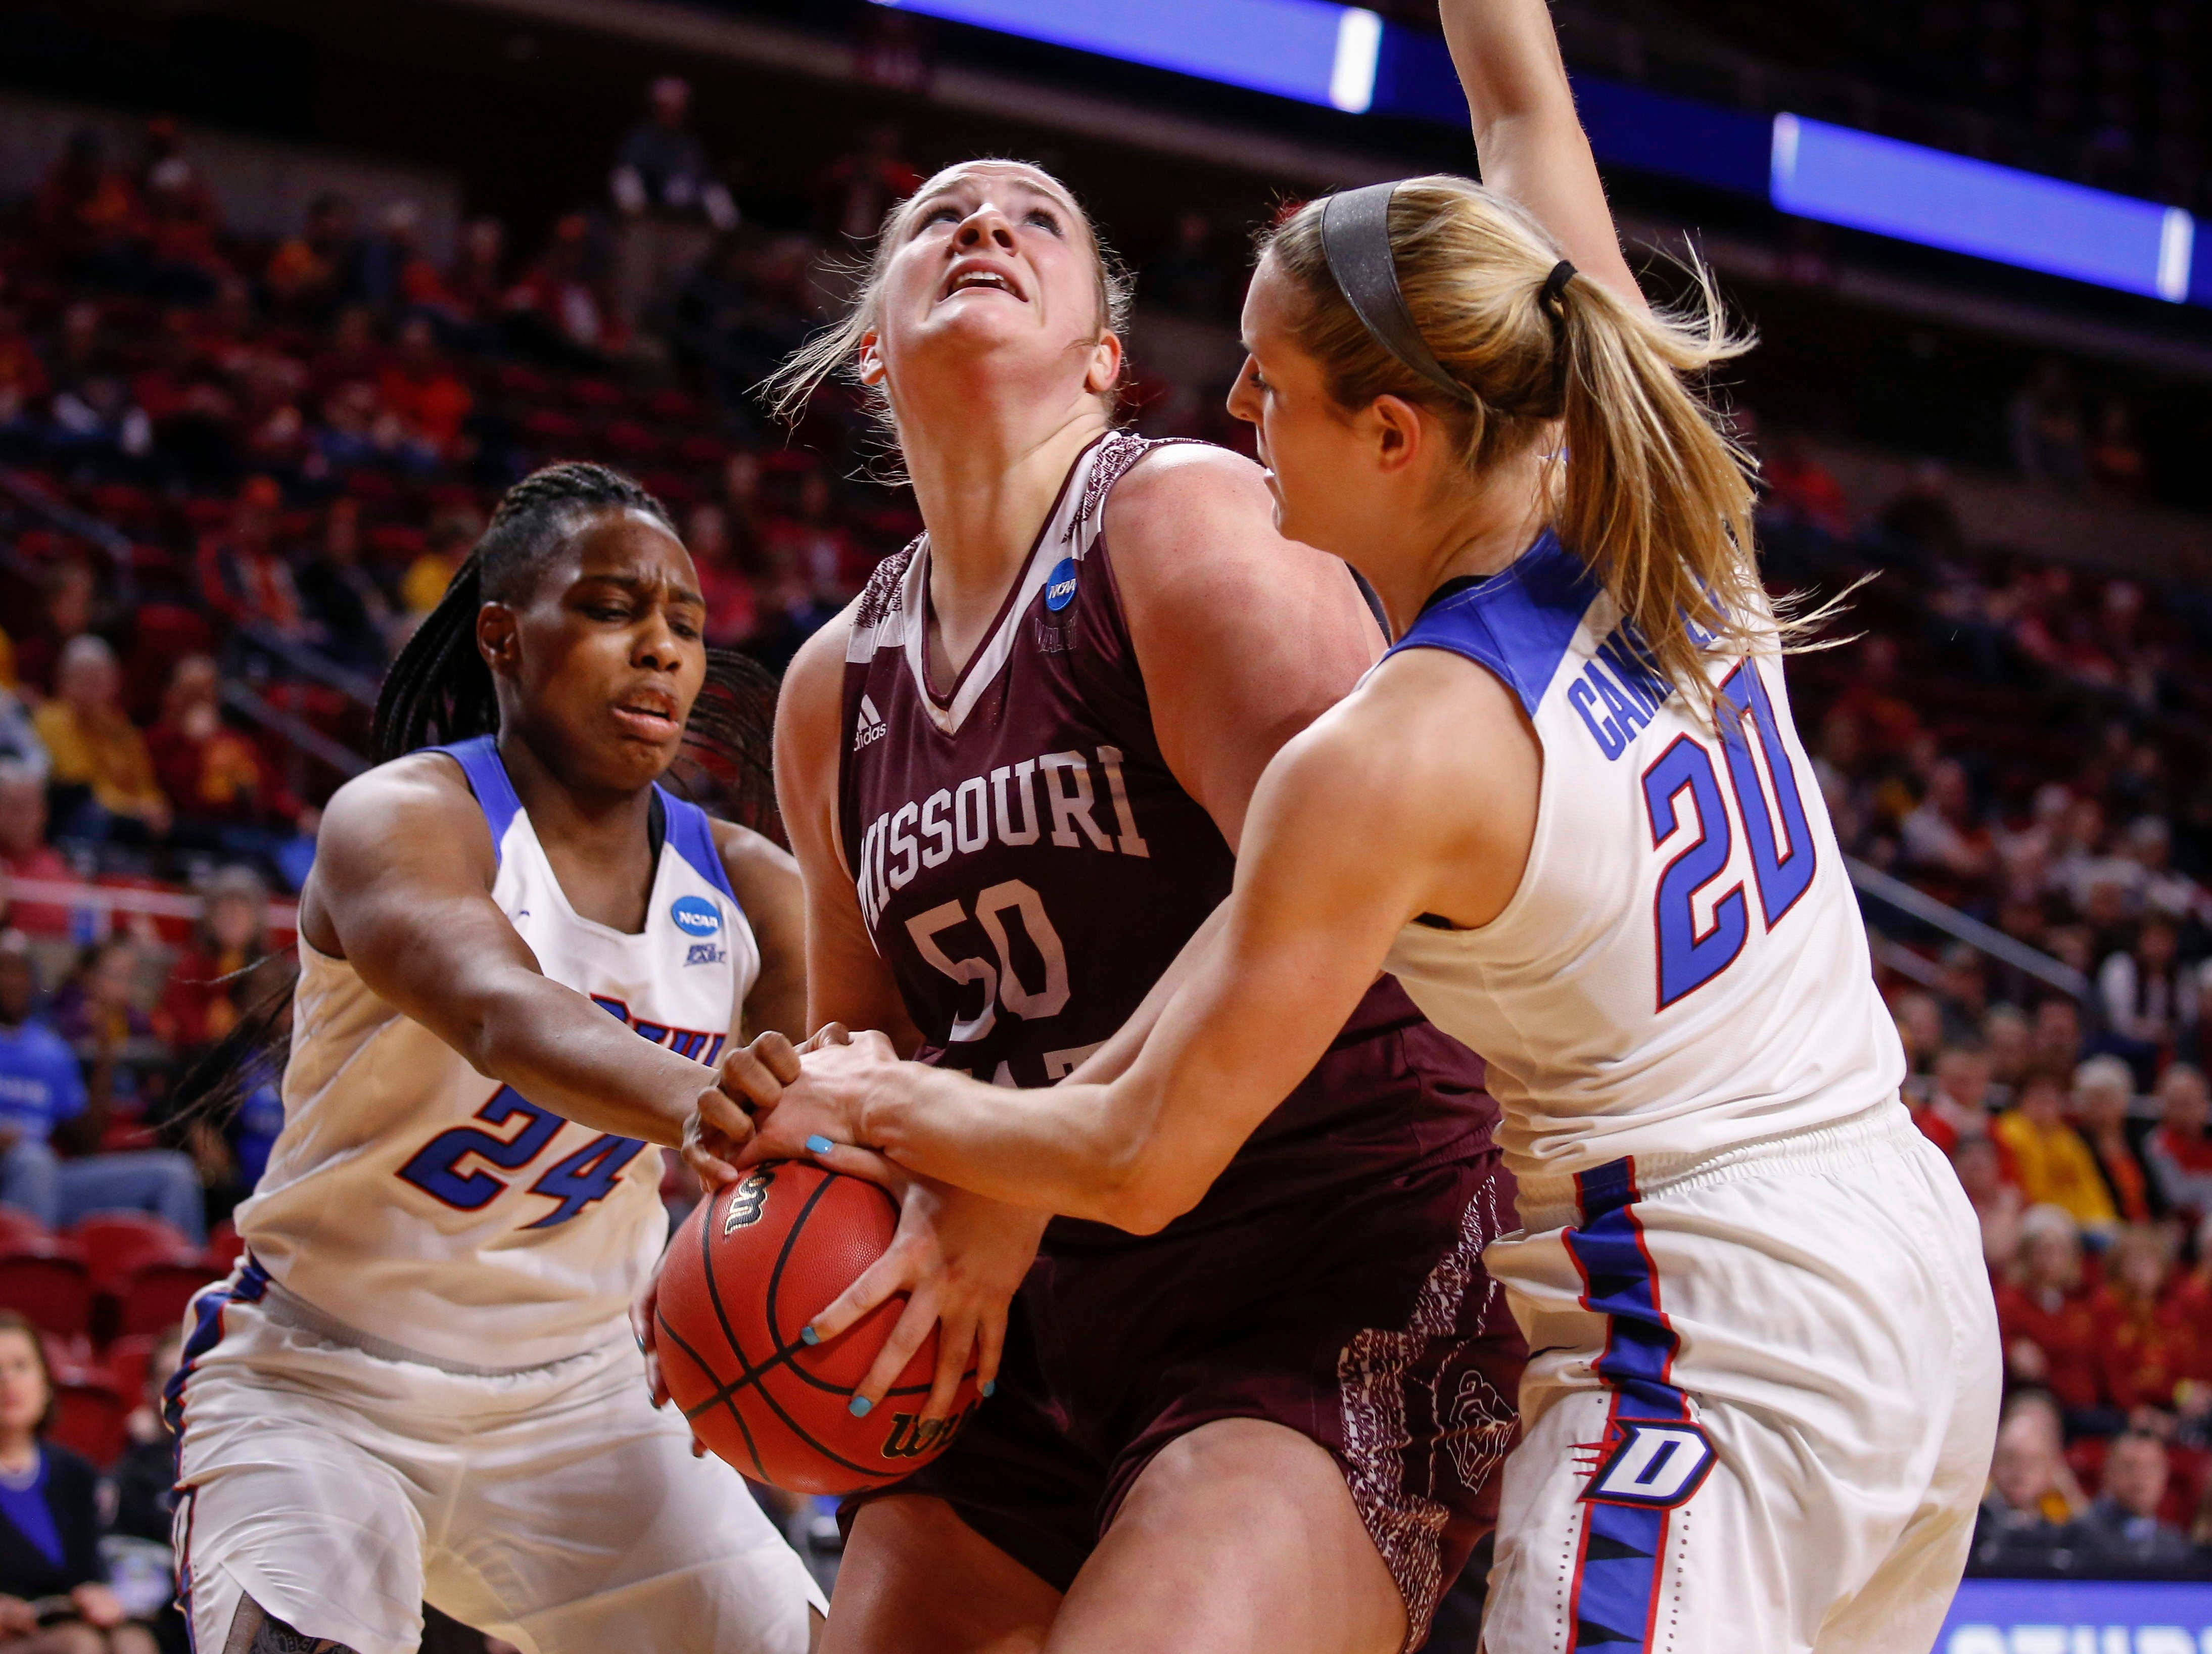 Missouri State sophomore Emily Gartner battles her way to the basket against DePaul on Saturday, March 23, 2019, at Hilton Coliseum in Ames.